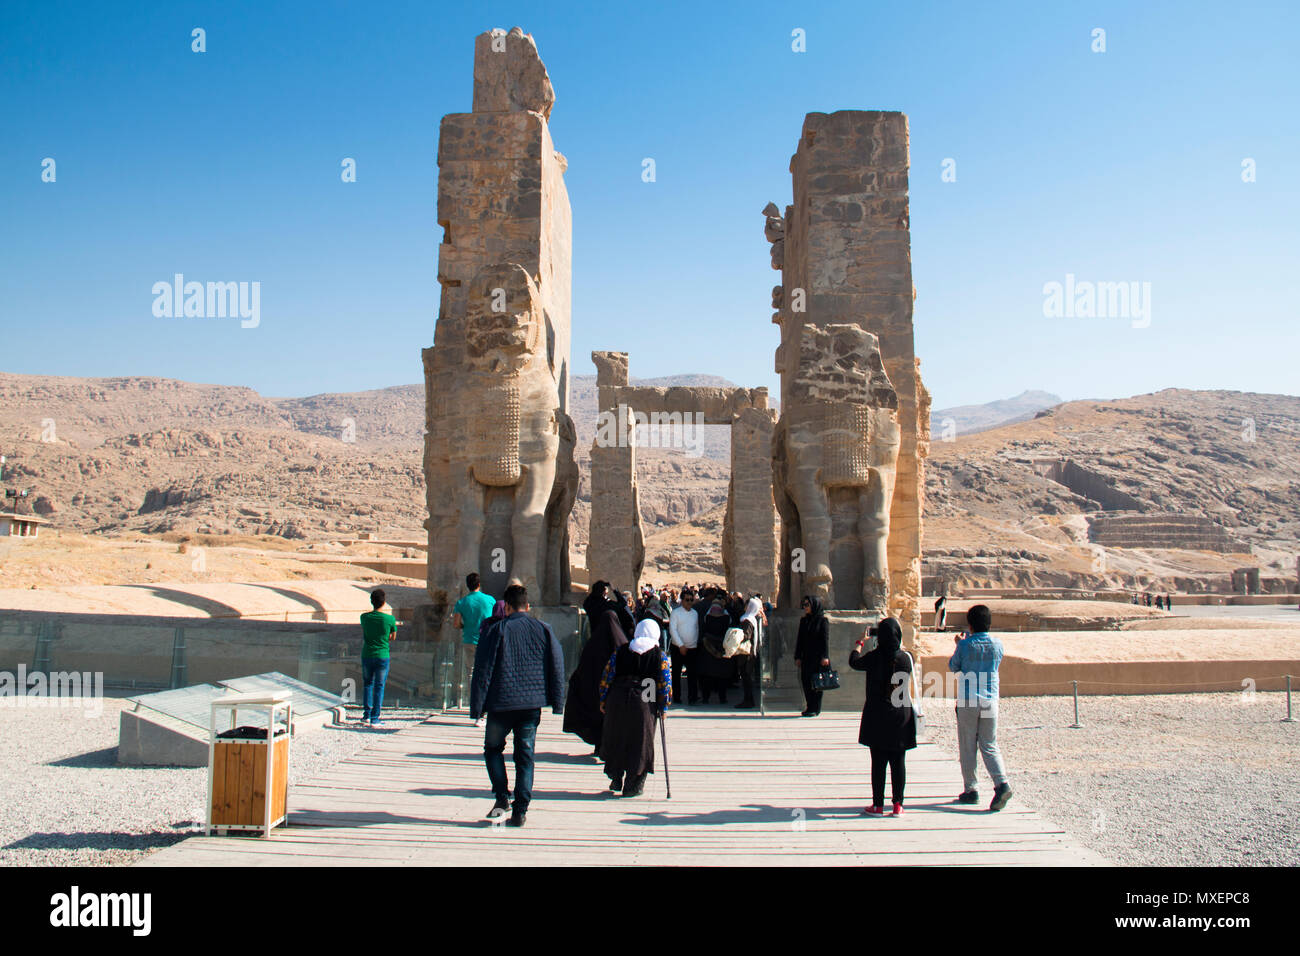 Persepolis Iran November 2017 Gate Of All Nations At The Ancient City Persepolis Was Once The Capital Of The Achaemenid Empire And Is Now Unesco H Stock Photo Alamy